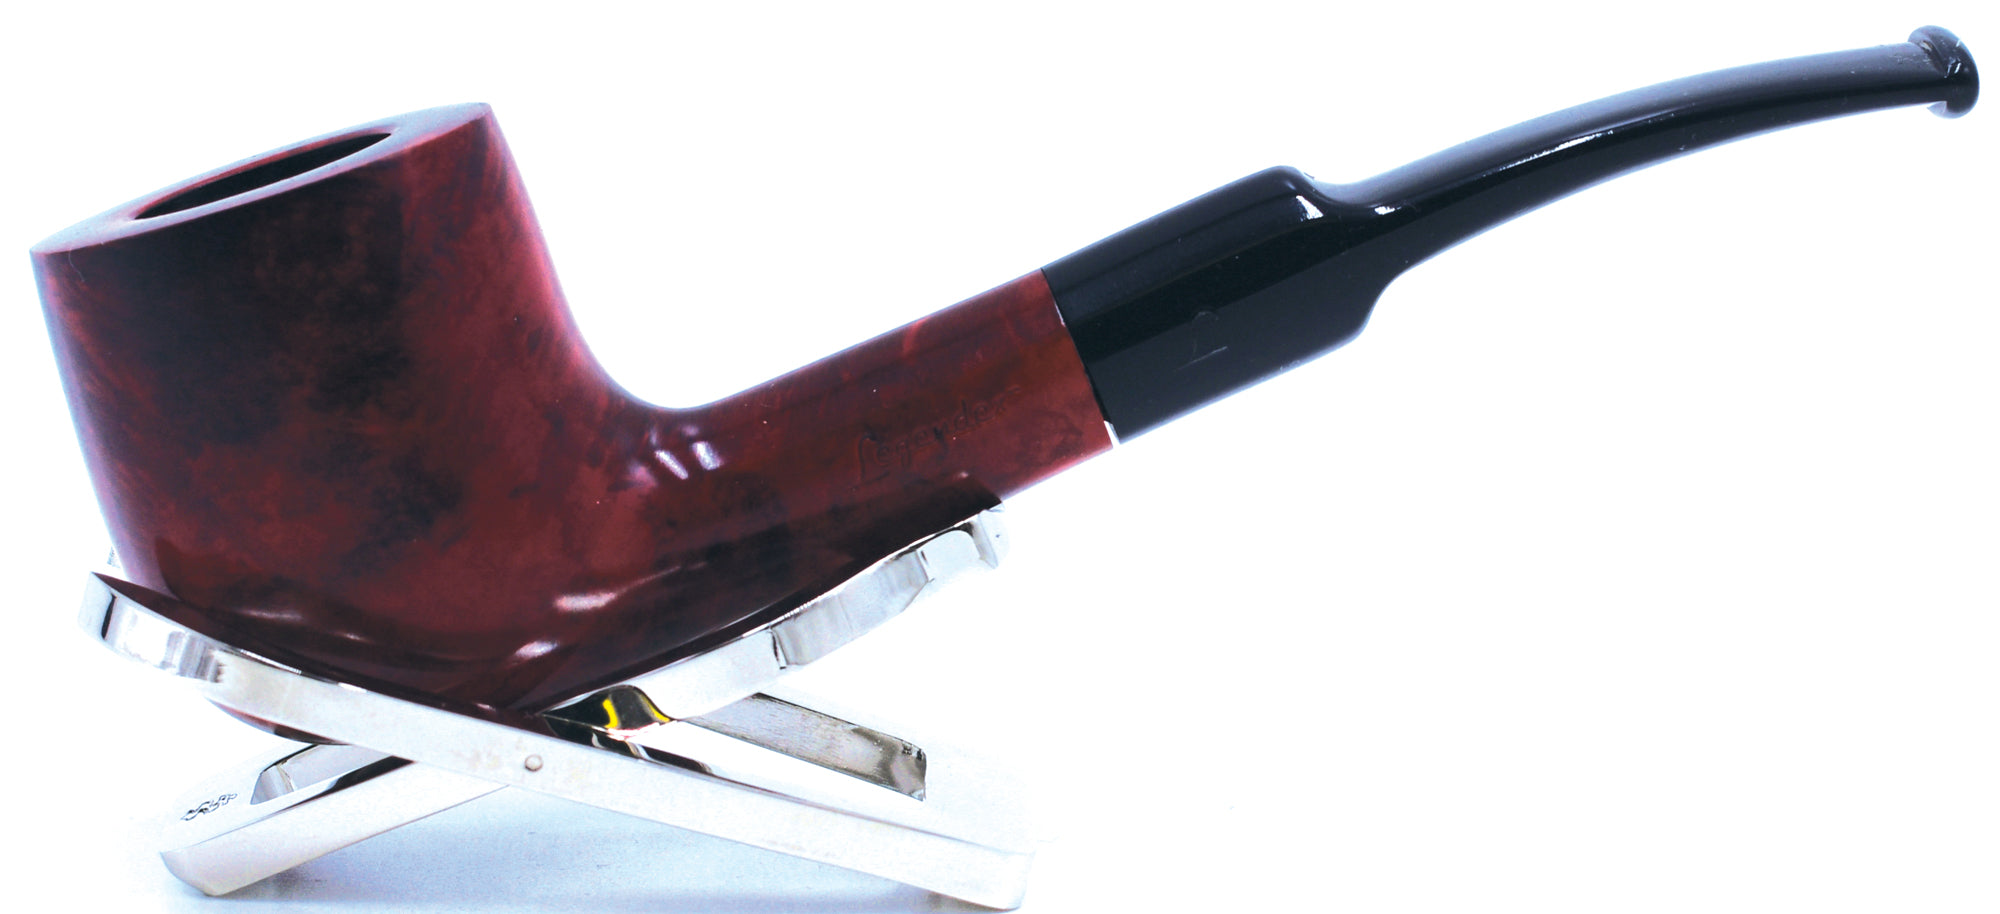 LEGENDEX® PAGANINI* 9 MM Filtered Briar Smoking Pipe Made In Italy 01-08-348